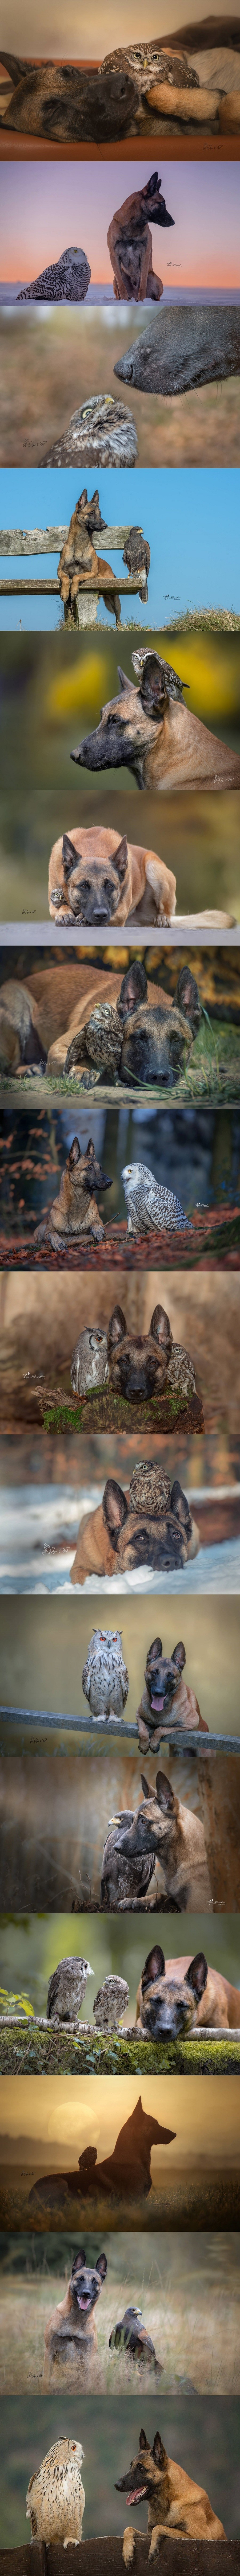 the doogo and the burd. join list: Suesskram (451 subs)Mention History.. When you were on vacation for two weeks and now everyone has a dog friend